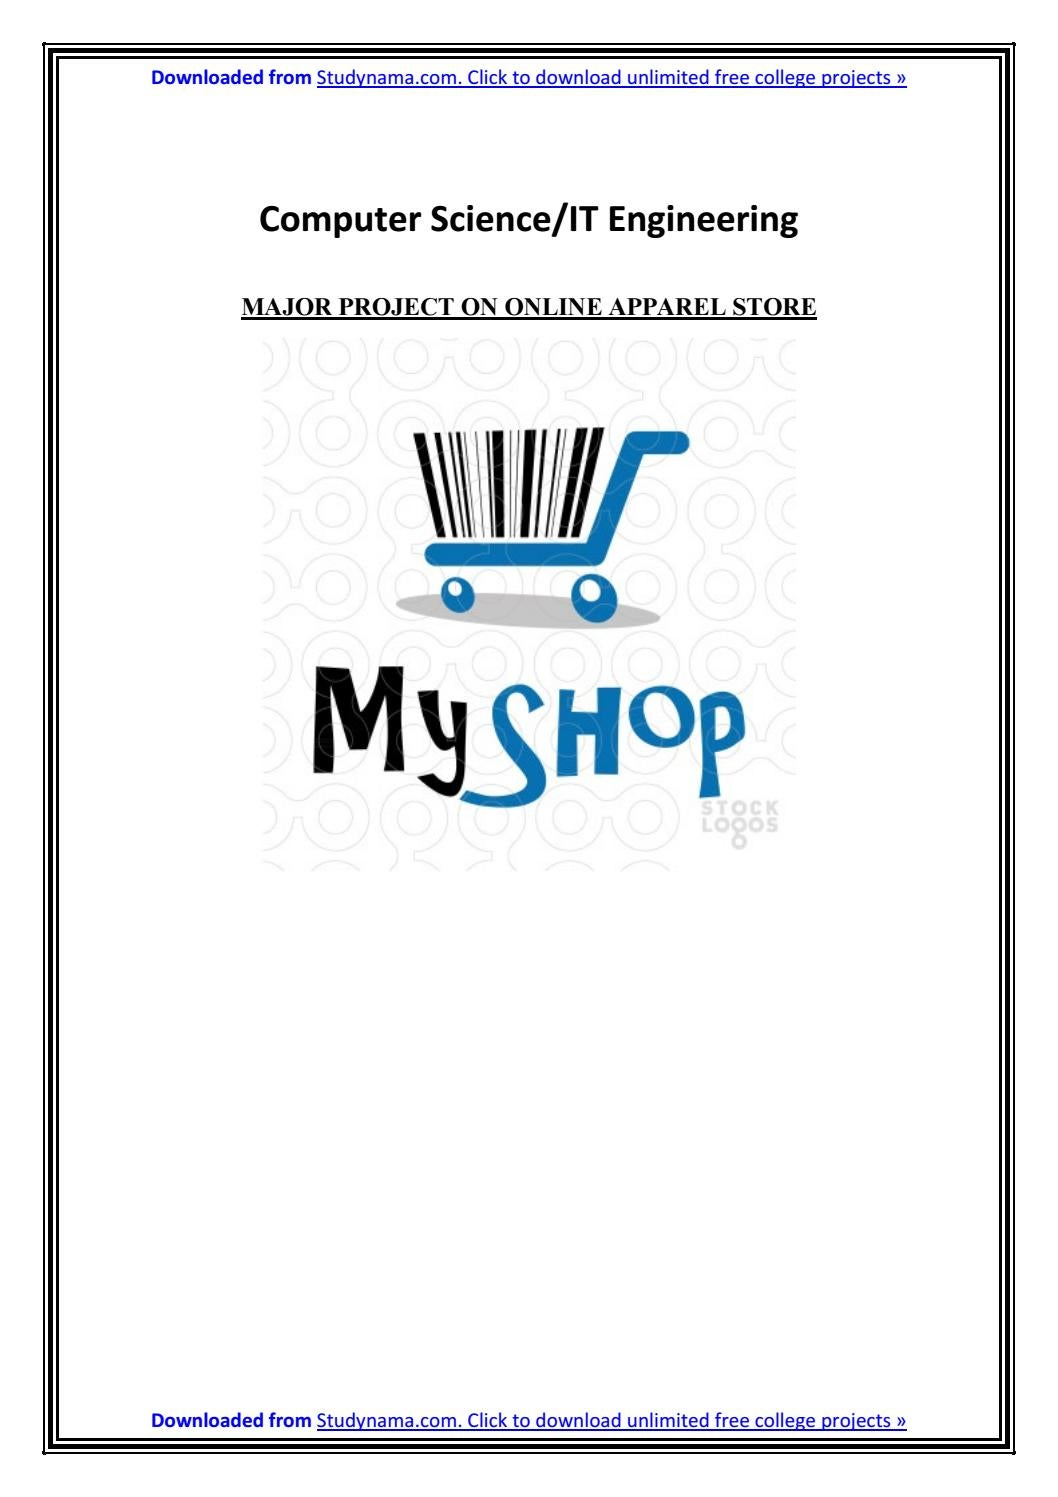 CSE-IT PHP MYSQL Project on Online Apparel Store - PDF